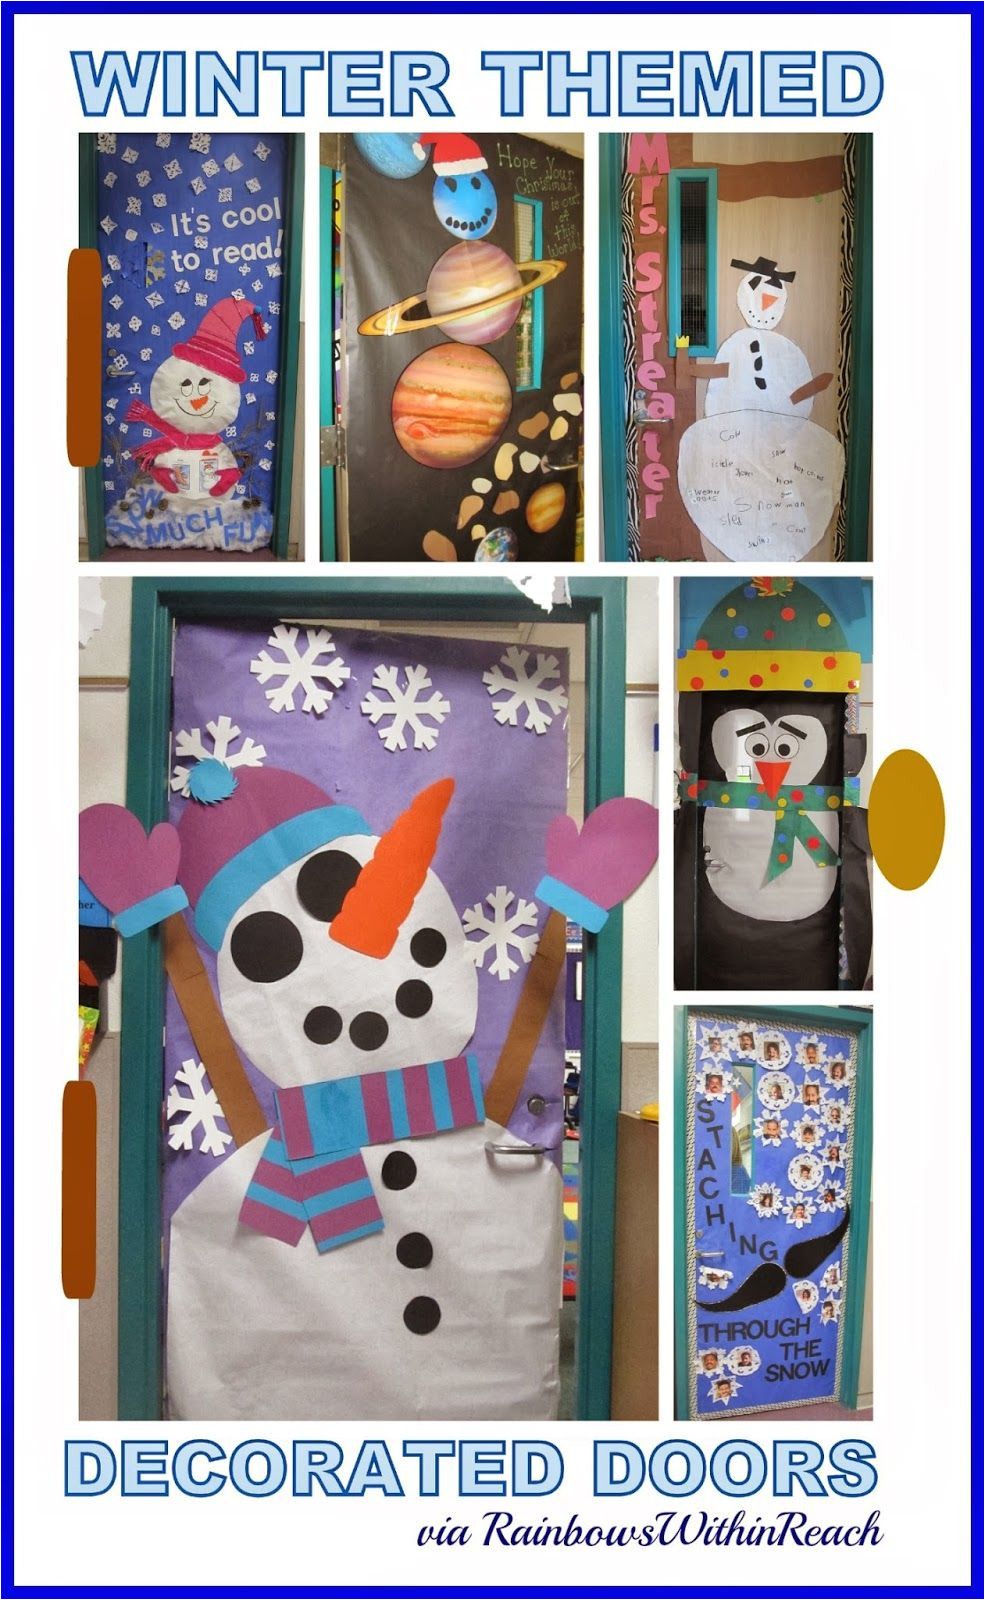 Winter Door Decorations For Elementary School Themed Decorated Clroom Doors Inspiration Education